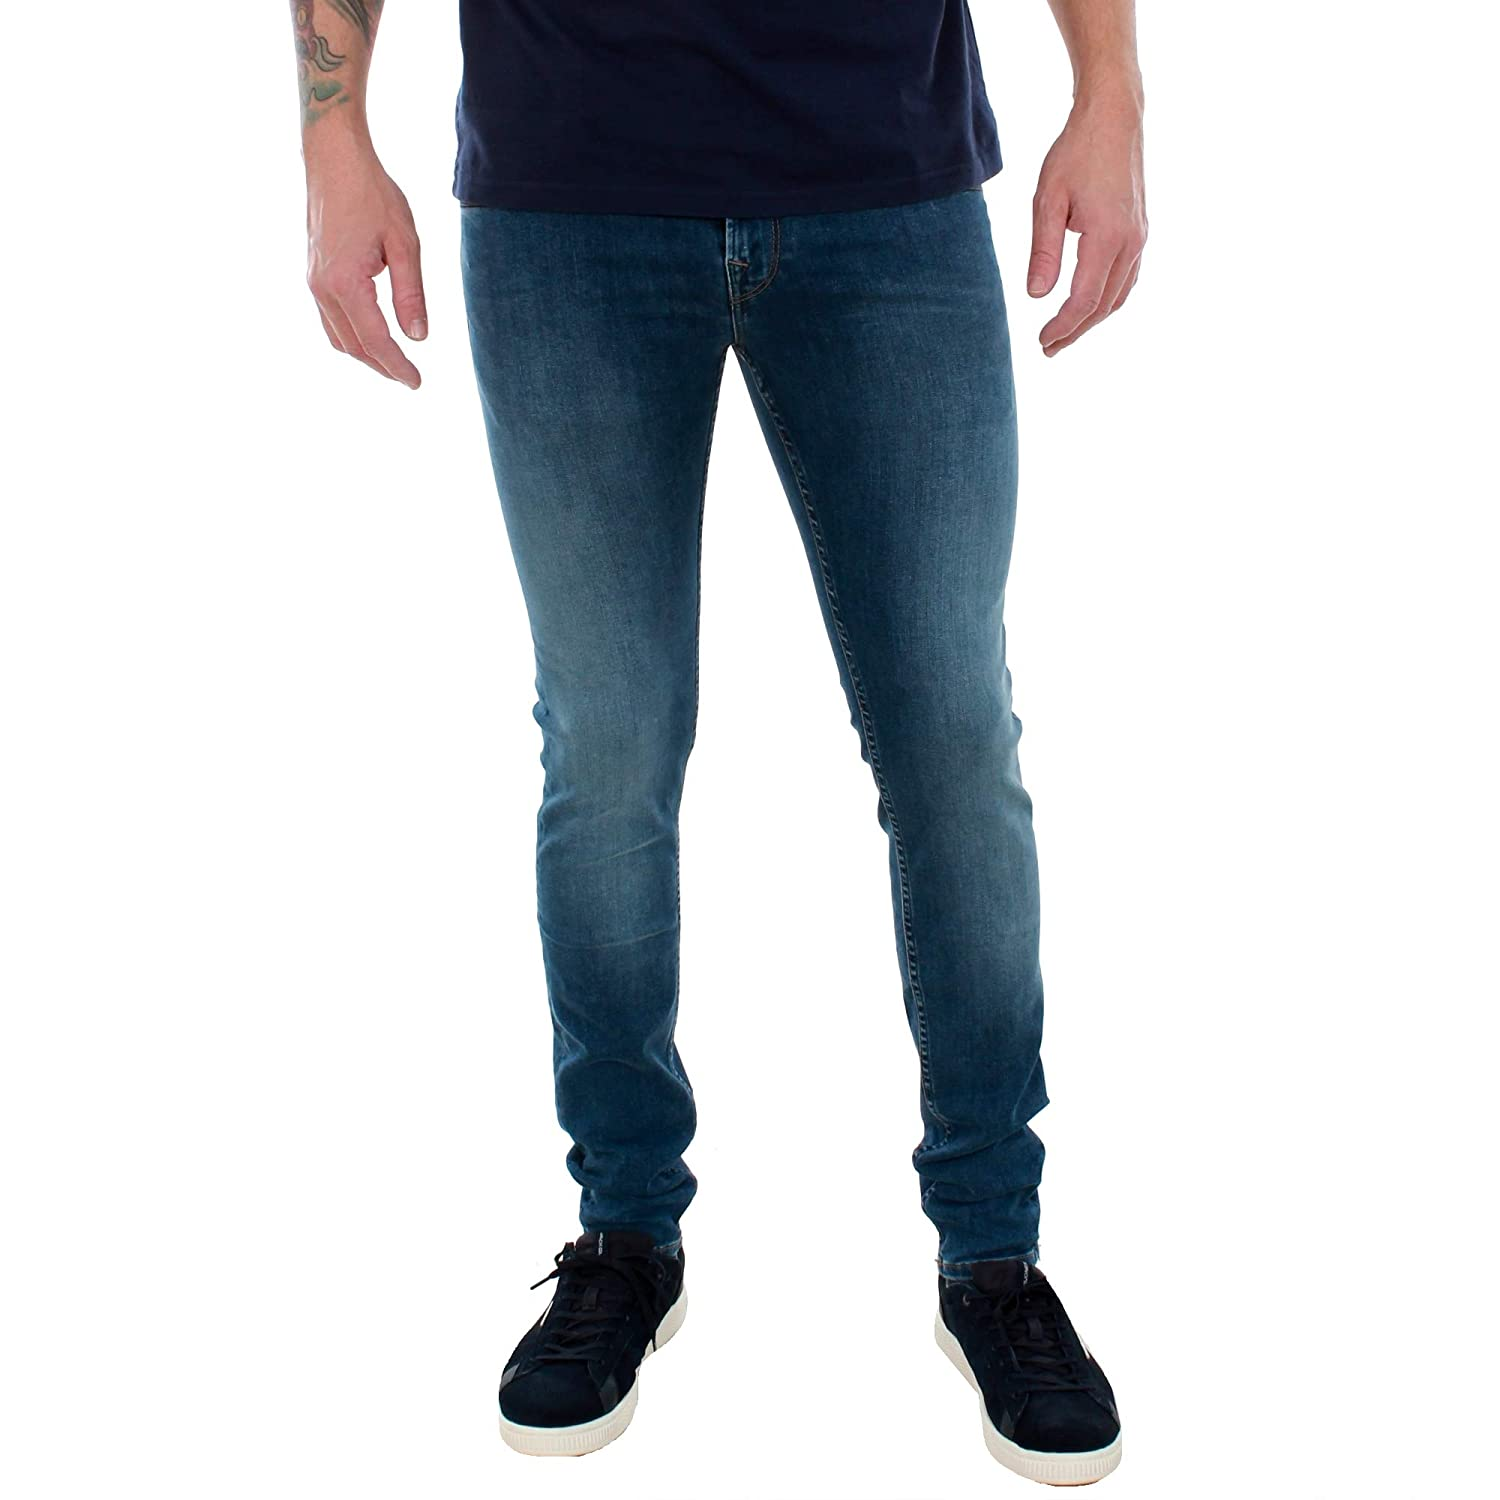 423cafce267 Pepe Jeans Jean Homme Bleu PM200338CF02 Finsbury